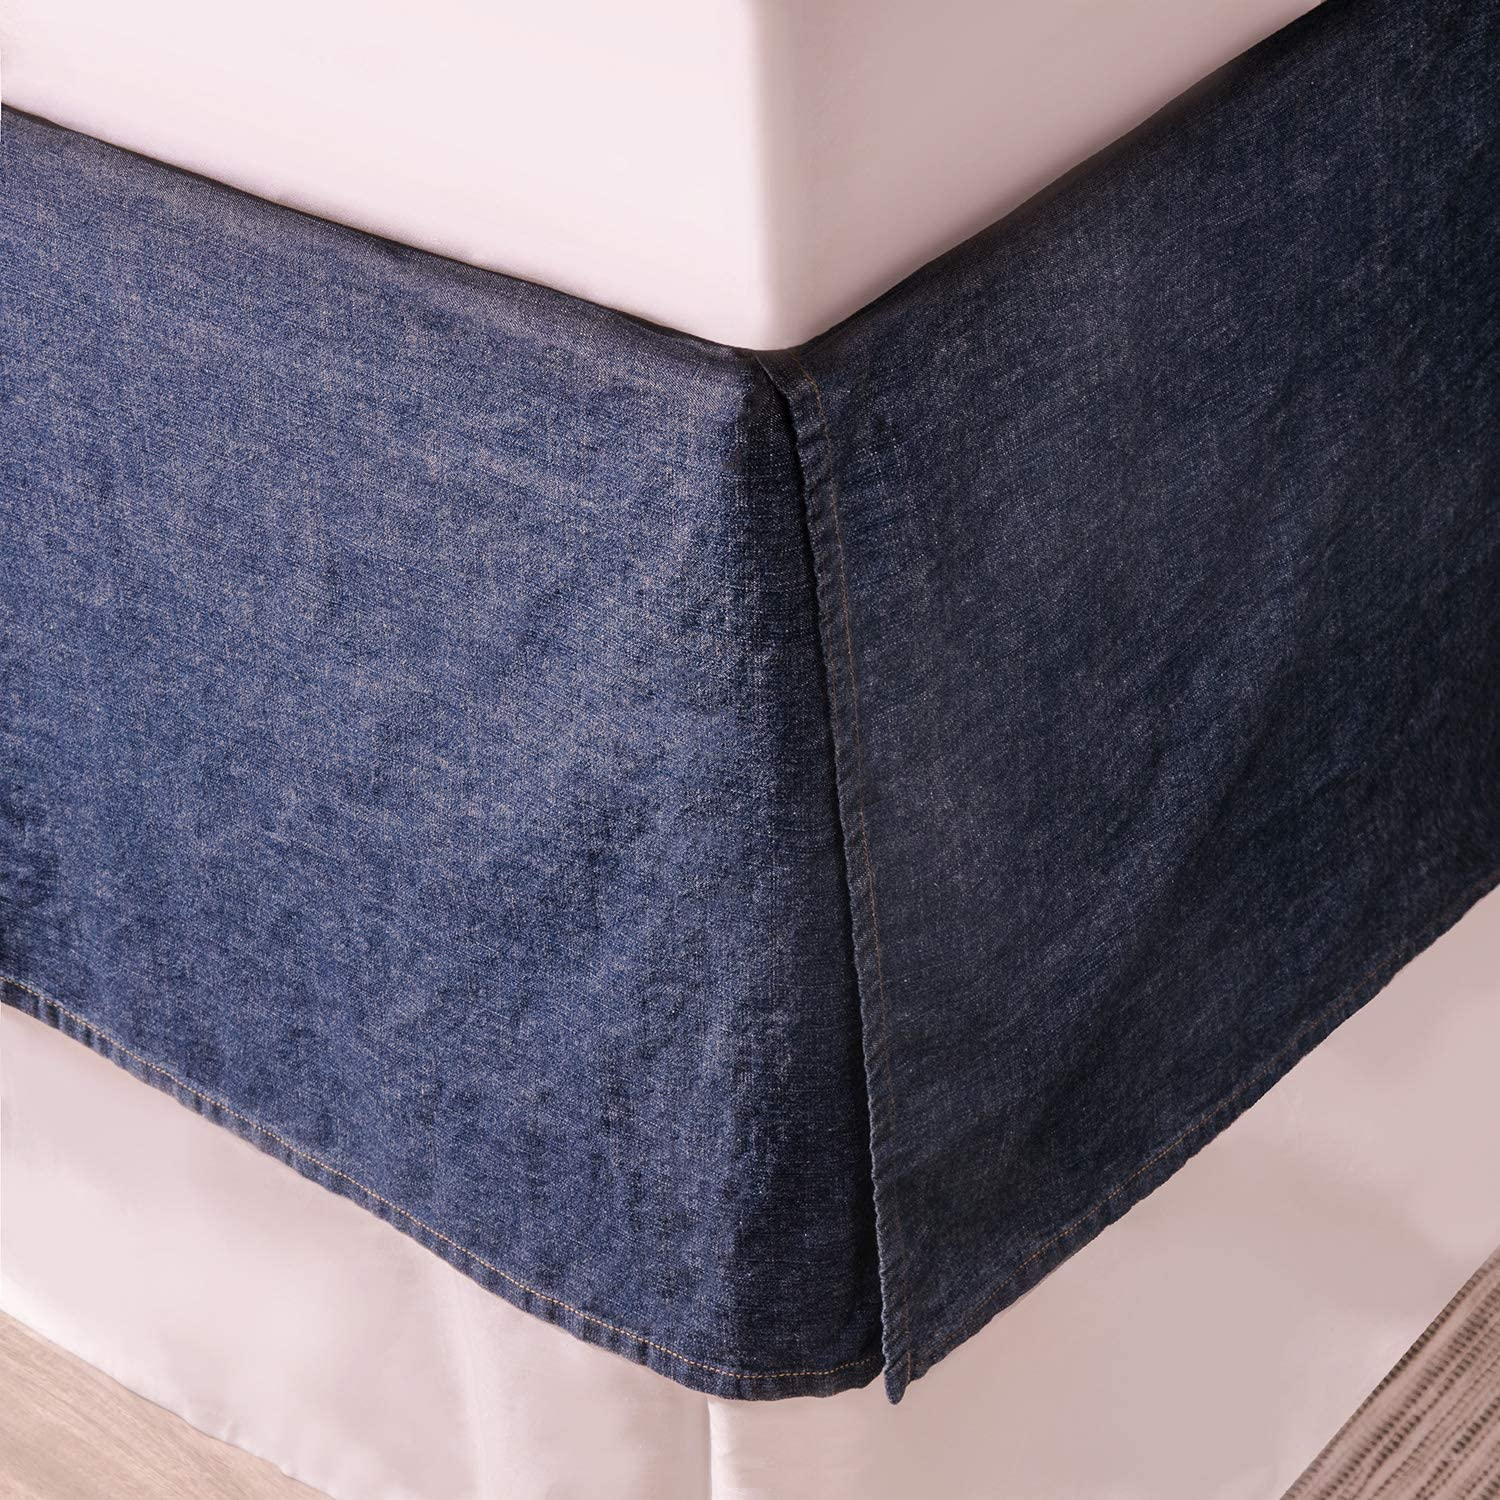 ELEGANT LIFE HOME Cotton Yarn Dyed Washed Denim Bed Skirt/Dust Ruffle – 18 Inch Tailored Drop (Twin 54'' x 75'' + 18'' Dark Blue 1PC)